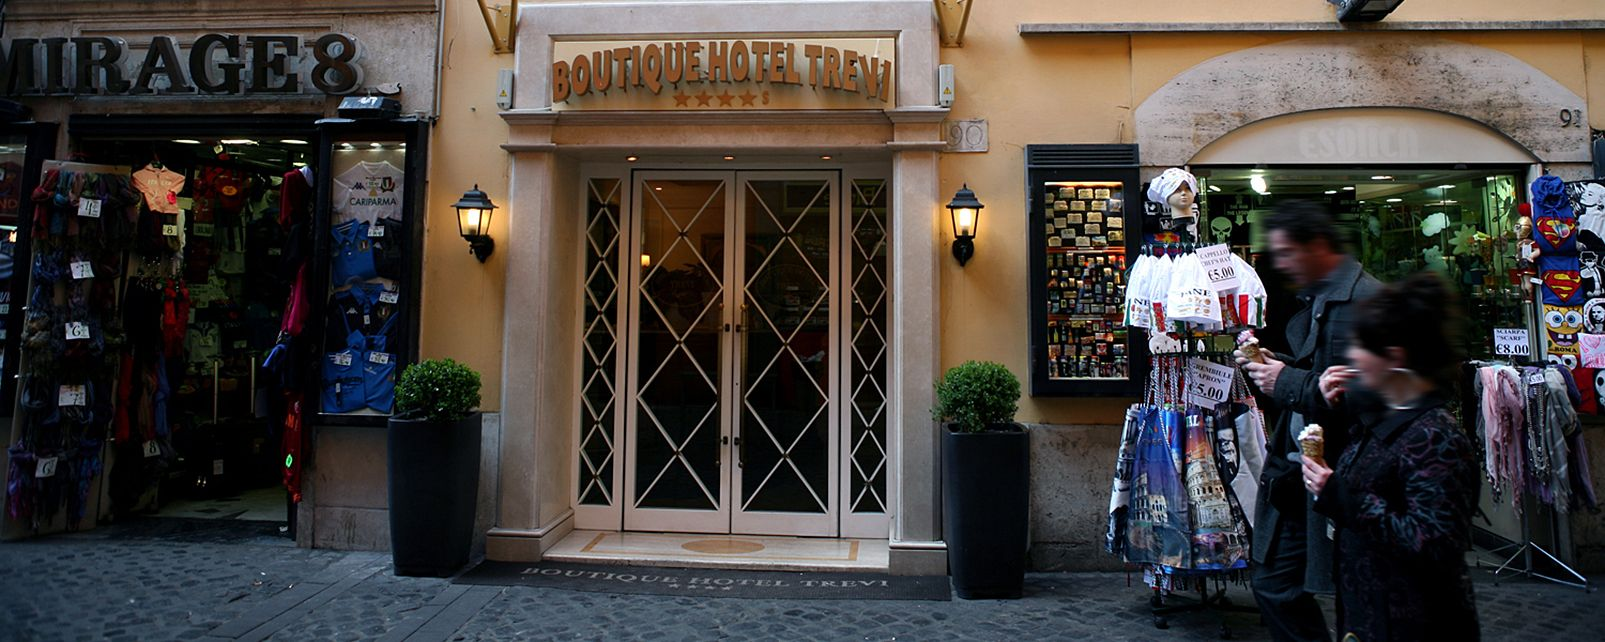 Hotel Boutique Trevi